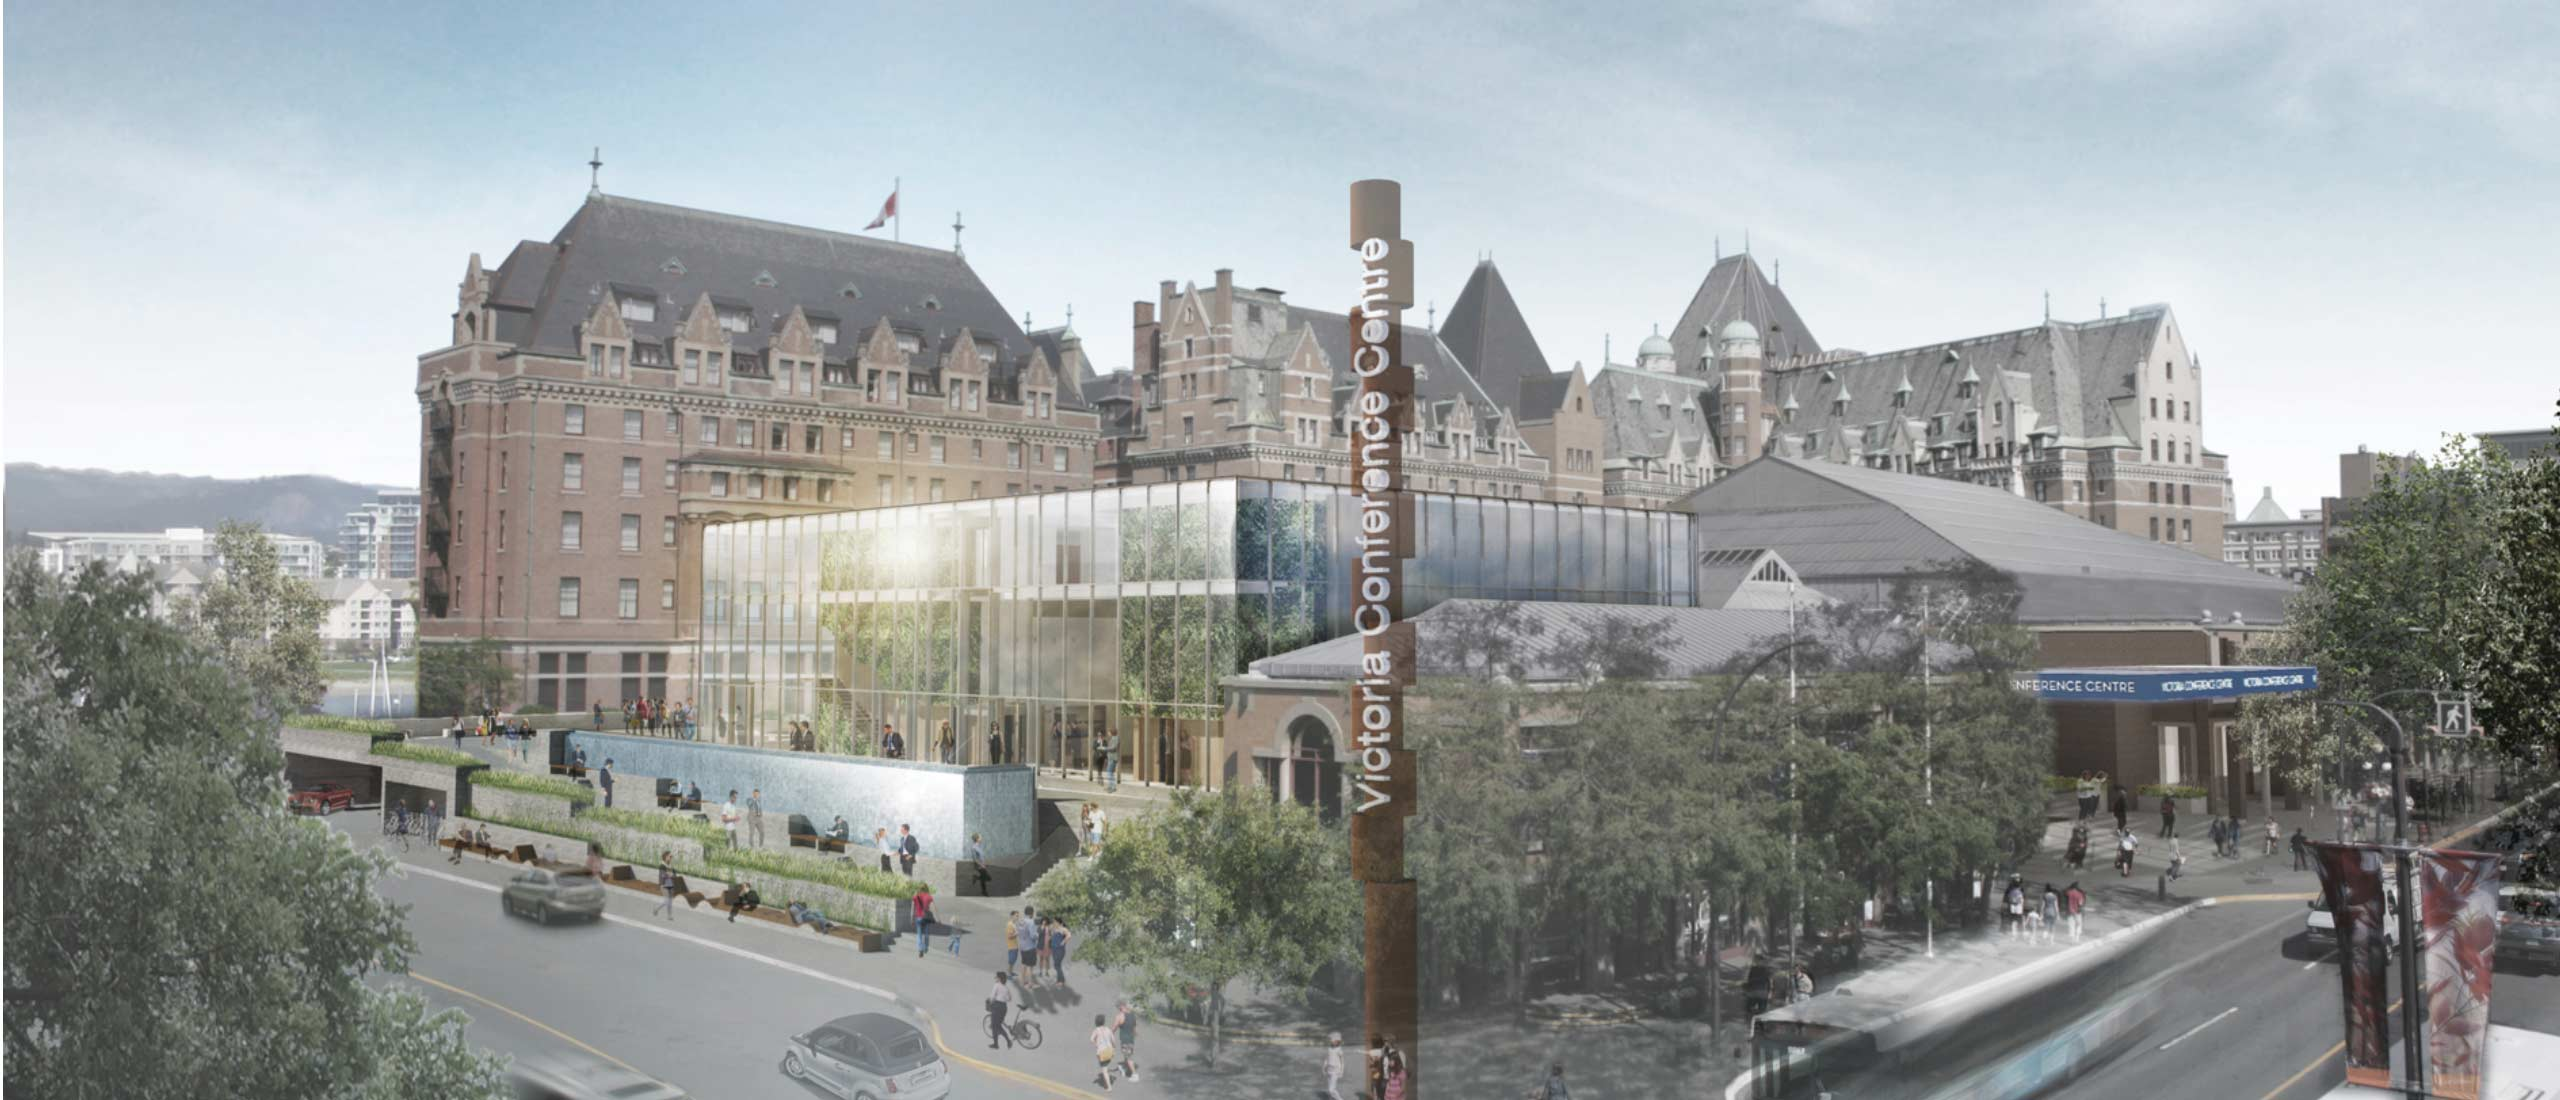 Victoria Conference Centre Renovation & Expansion Design Study © DAU